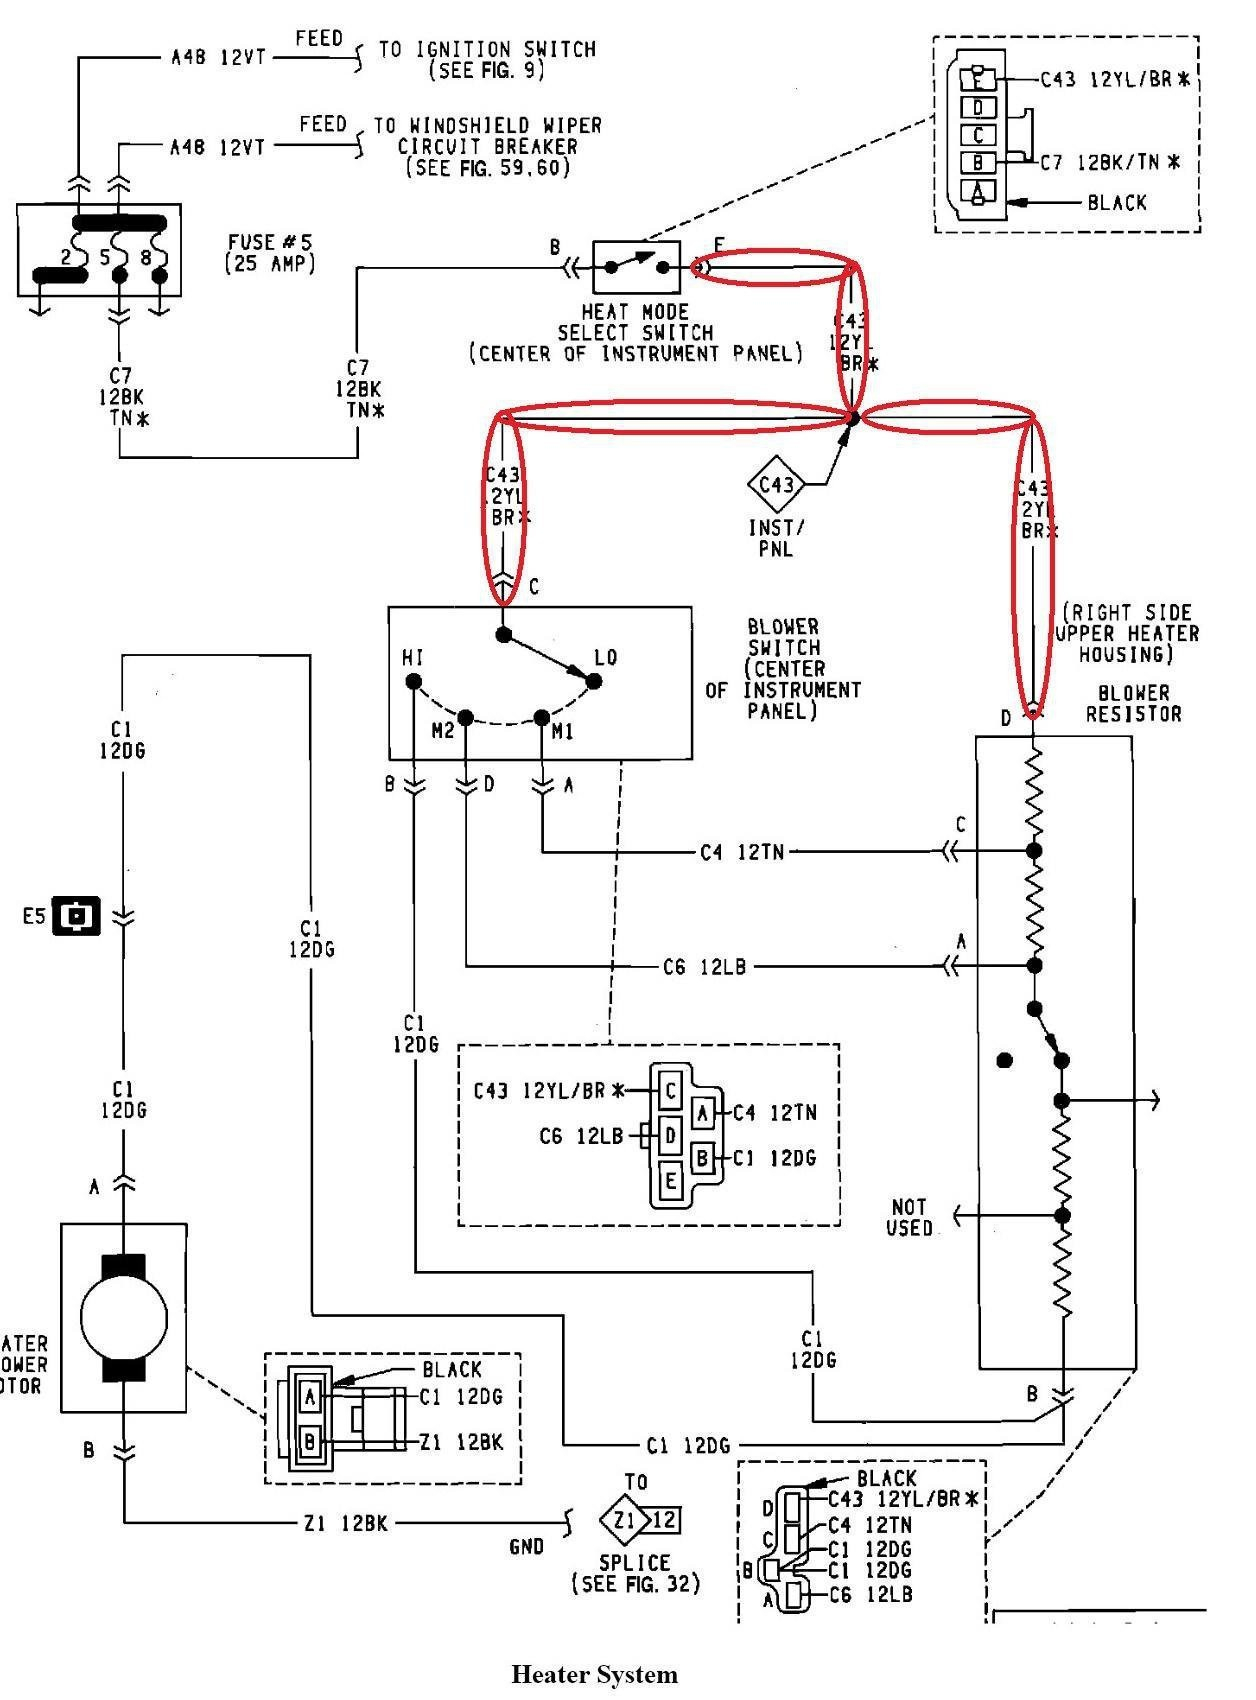 DIAGRAM] 6 Volt Ezgo Wiring Diagram FULL Version HD Quality Wiring Diagram  - DIAGRAMMERS.GSXBOOKING.ITdiagrammers.gsxbooking.it